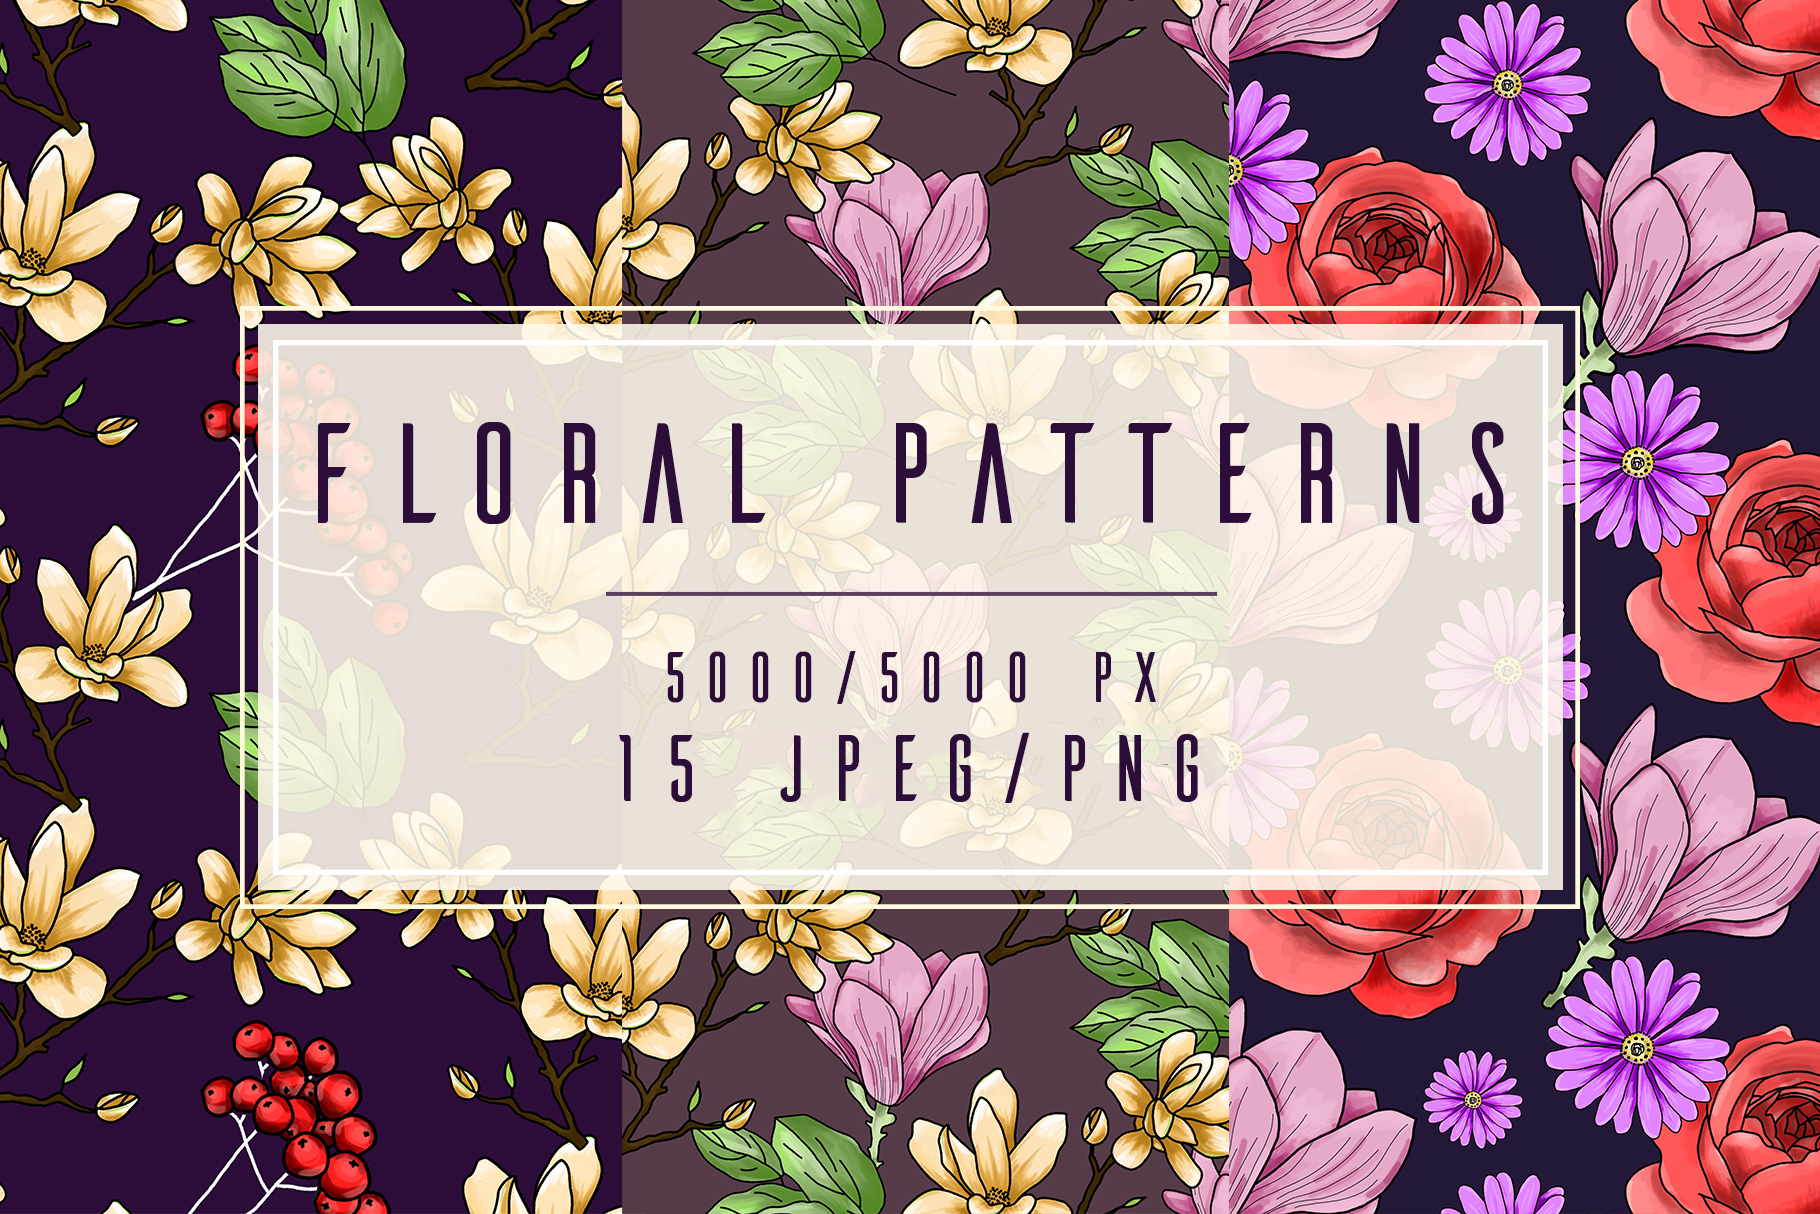 Floral Patterns example image 1